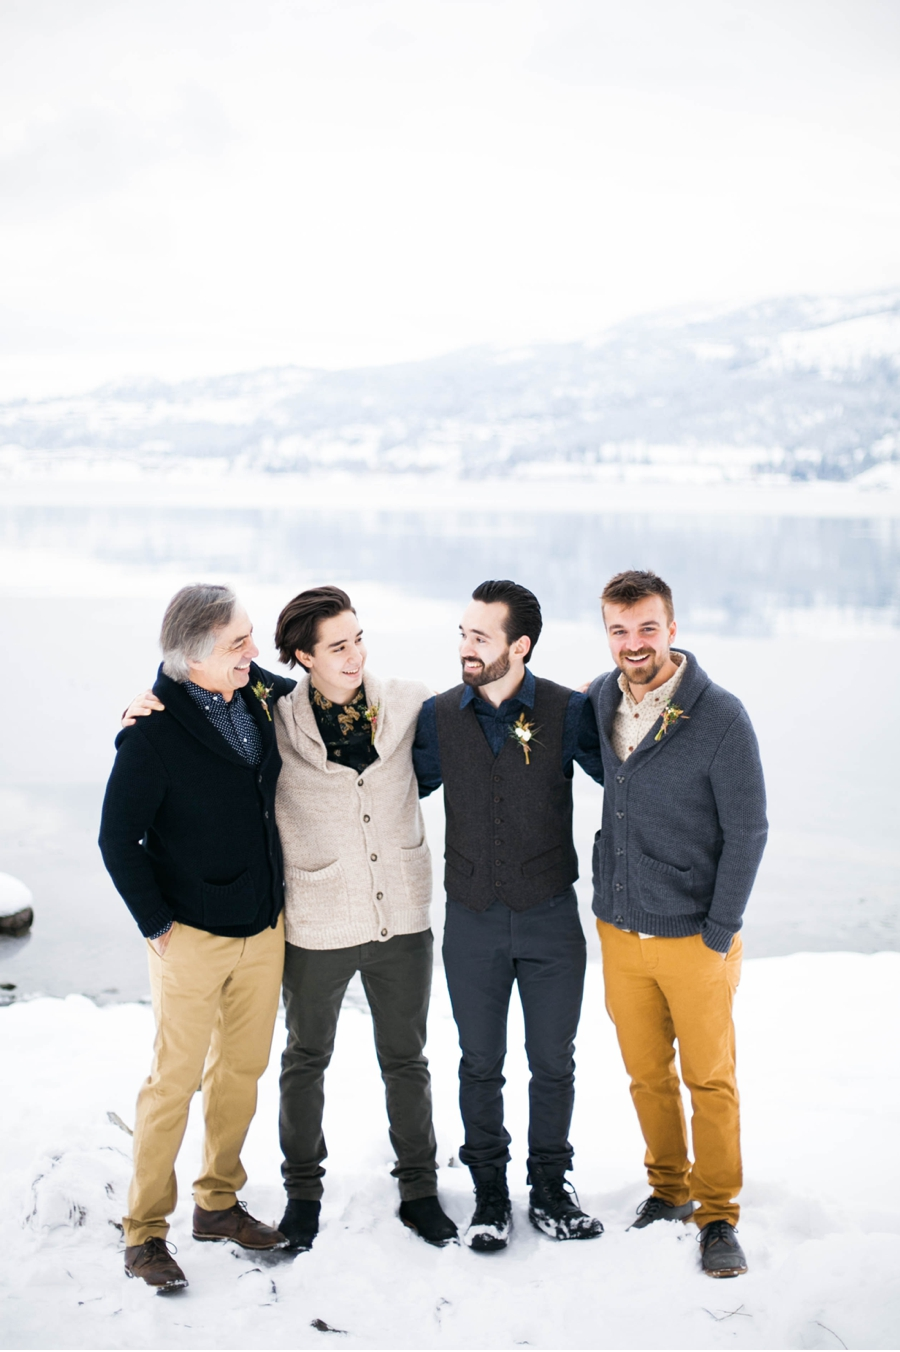 Casual-Winter-Wedding-Attire-for-Groomsmen